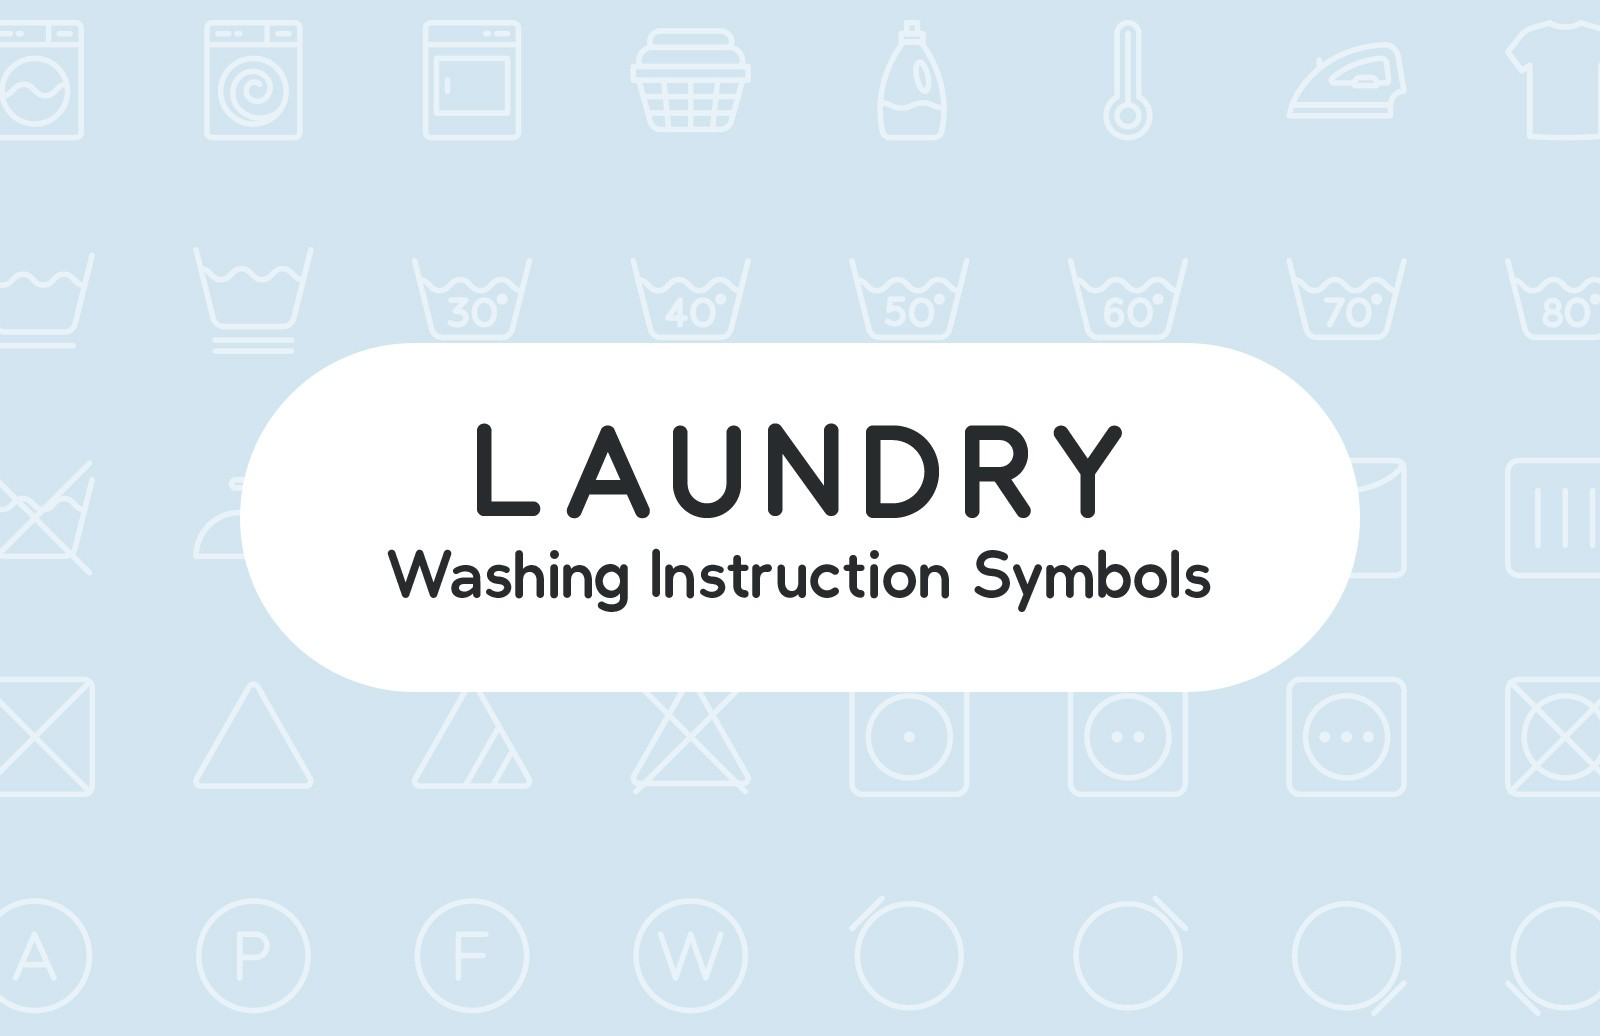 Laundry Washing Instruction Symbols